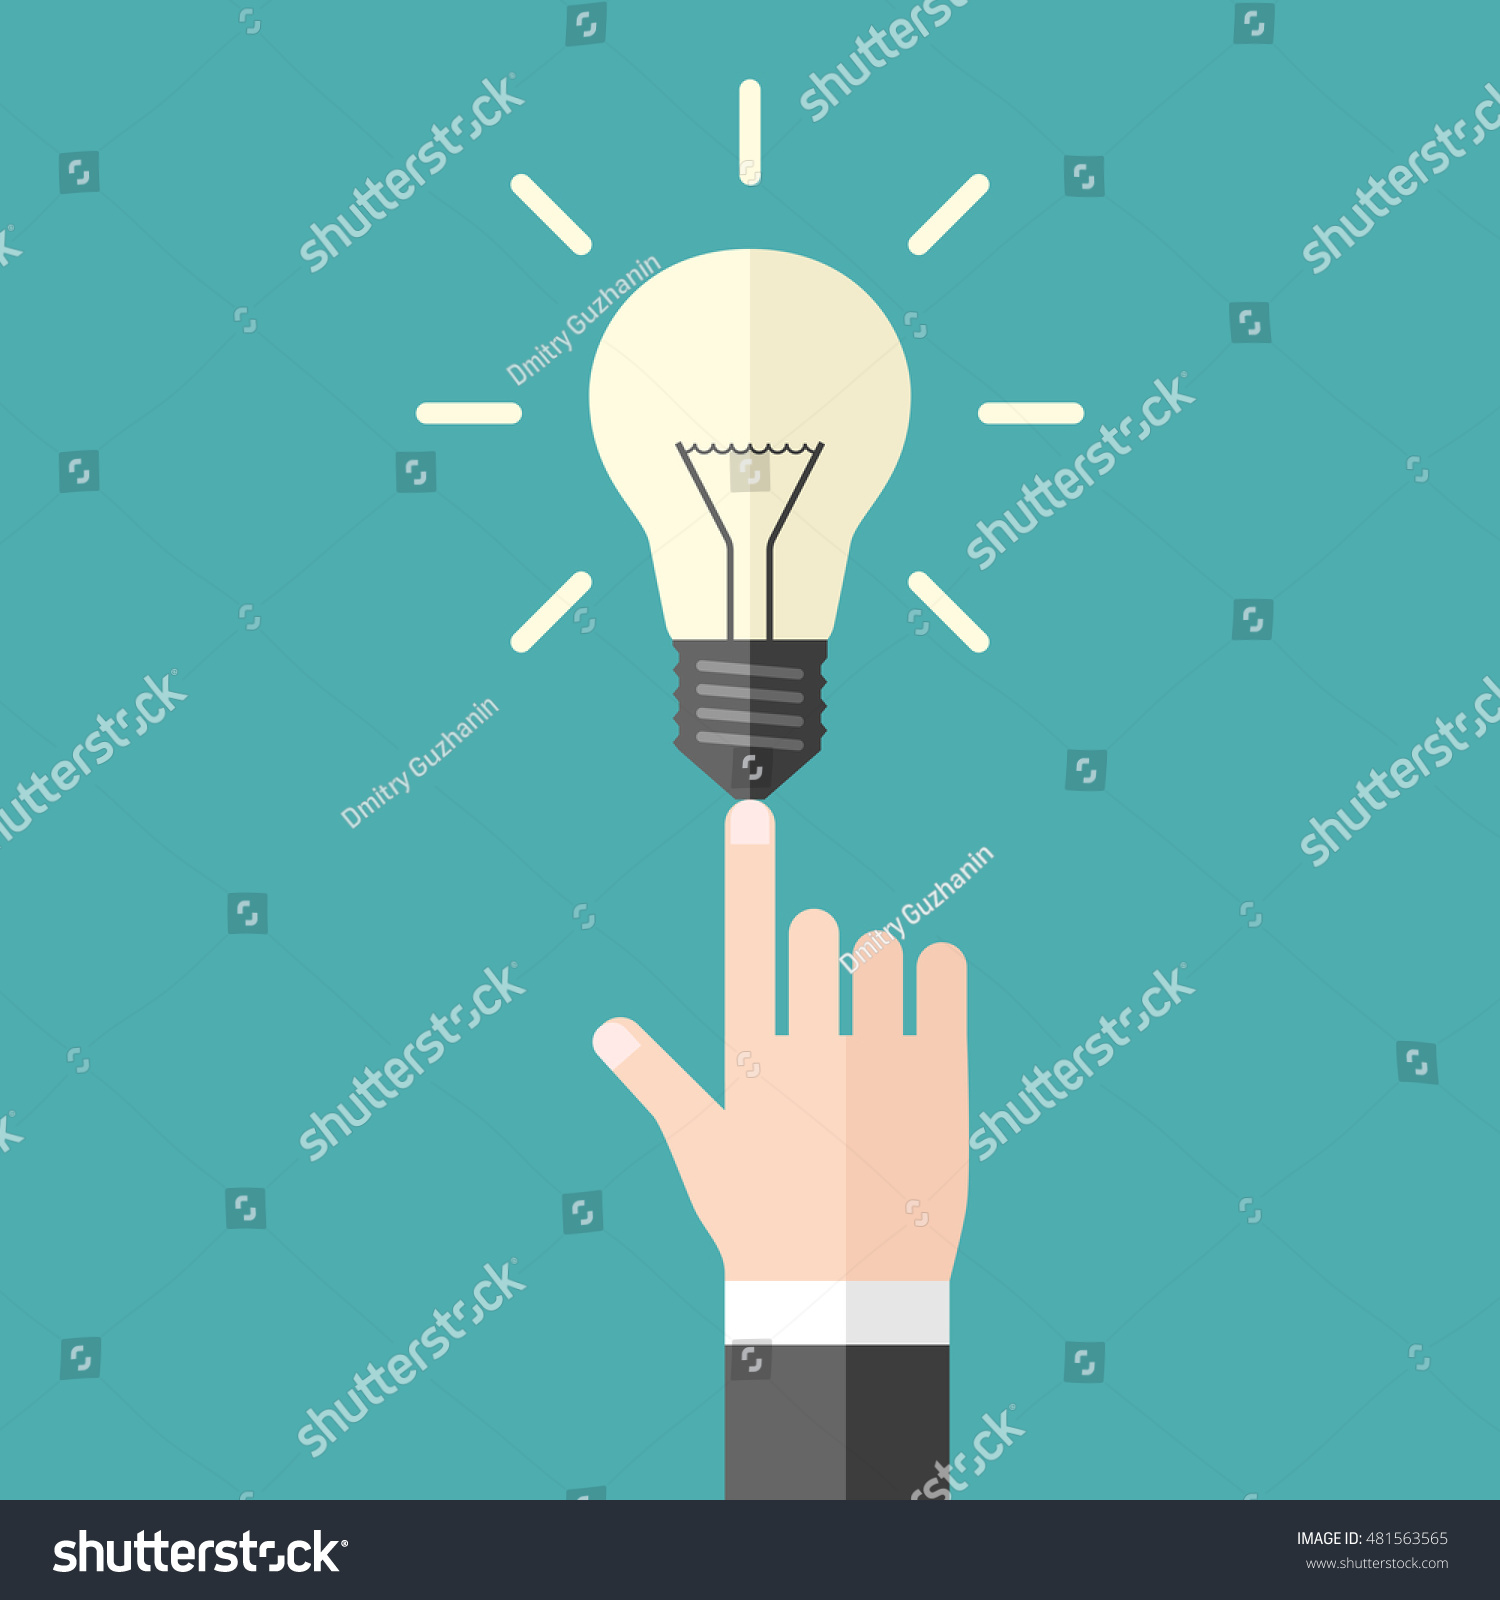 Hand Shining Light Bulb On Blue Stock Vector Royalty Free Diagram Of Incandescent With Background Aha Moment Innovation And Inspiration Concept